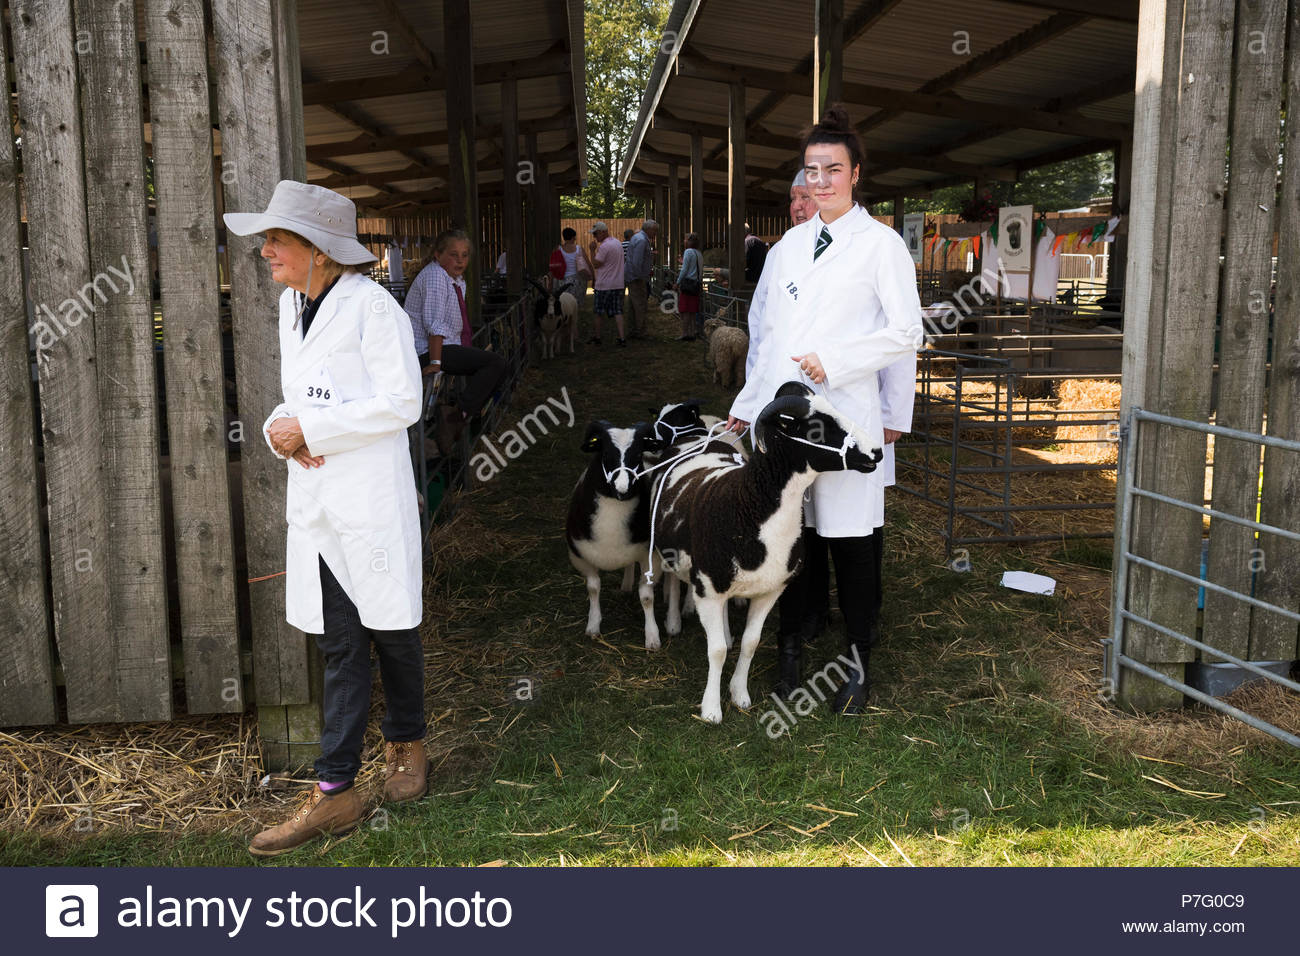 Detling, Kent, UK. 6th July 2018. The Kent County Show opens its annual three day extravaganza of all things agricultural with prize-giving to everything from livestock to local soft fruit produce and cake-making. Stock Photo